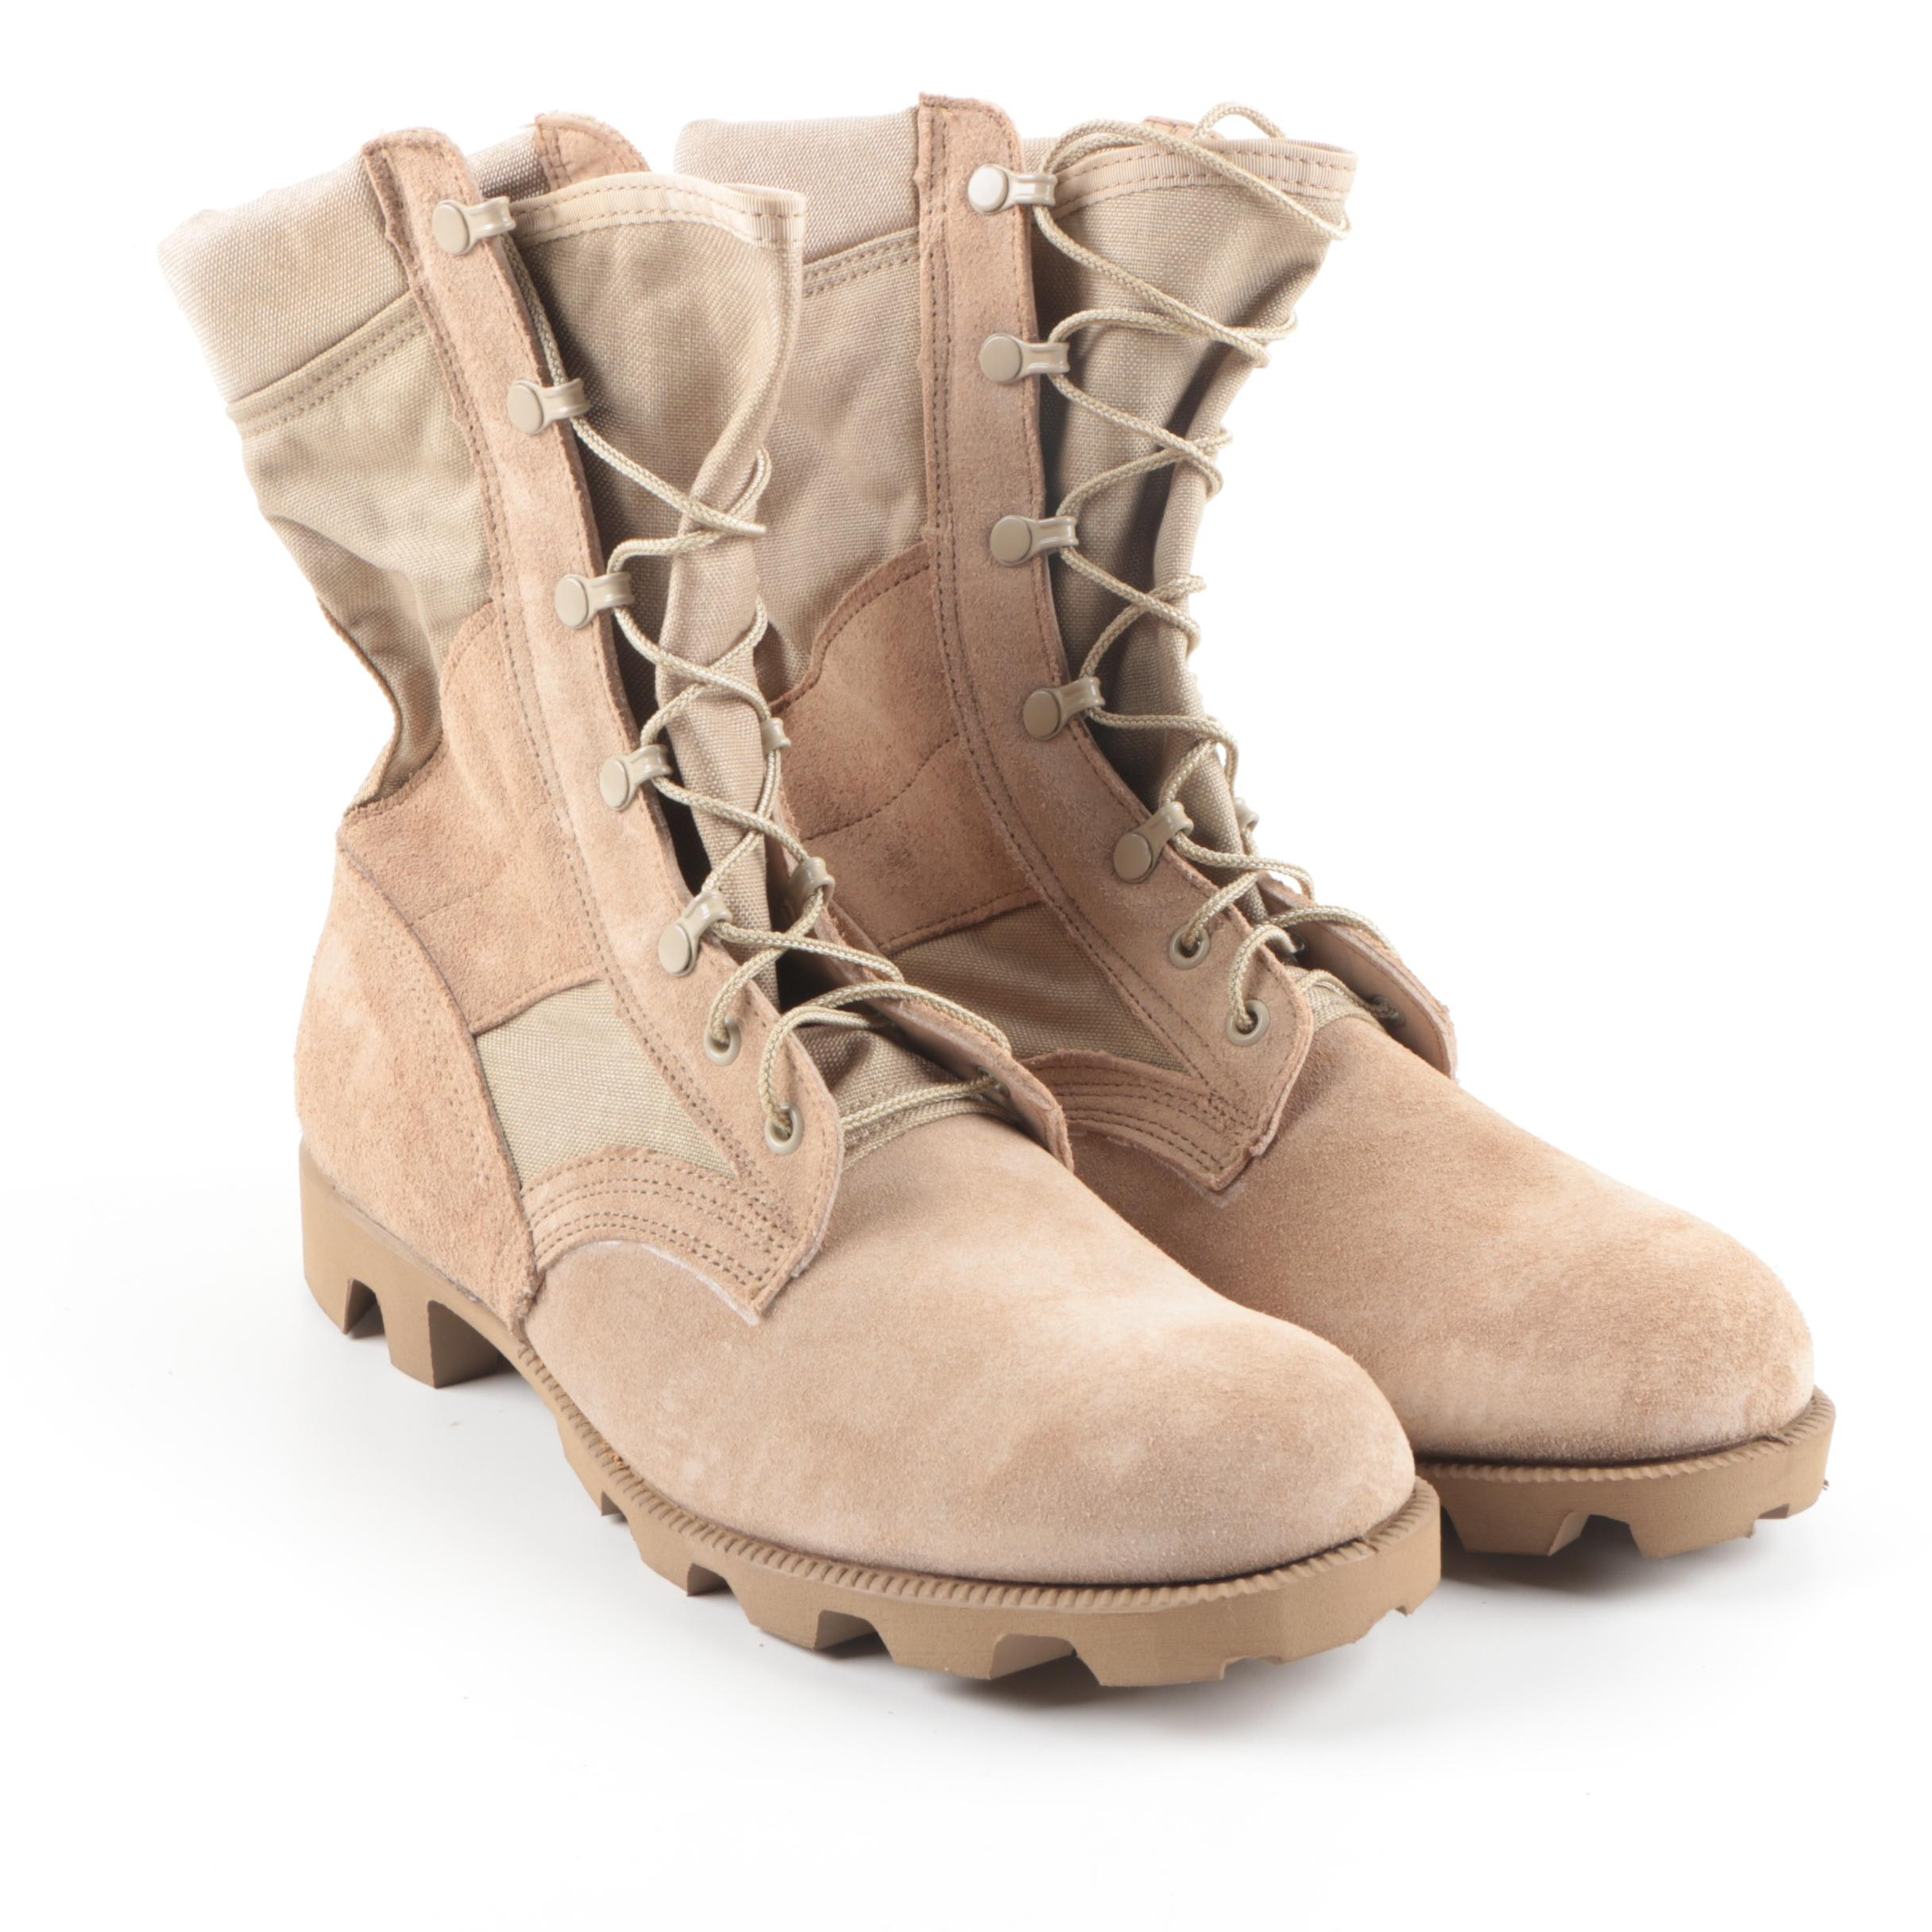 Men's Military Combat Boots in Tan Suede Leather and Fabric